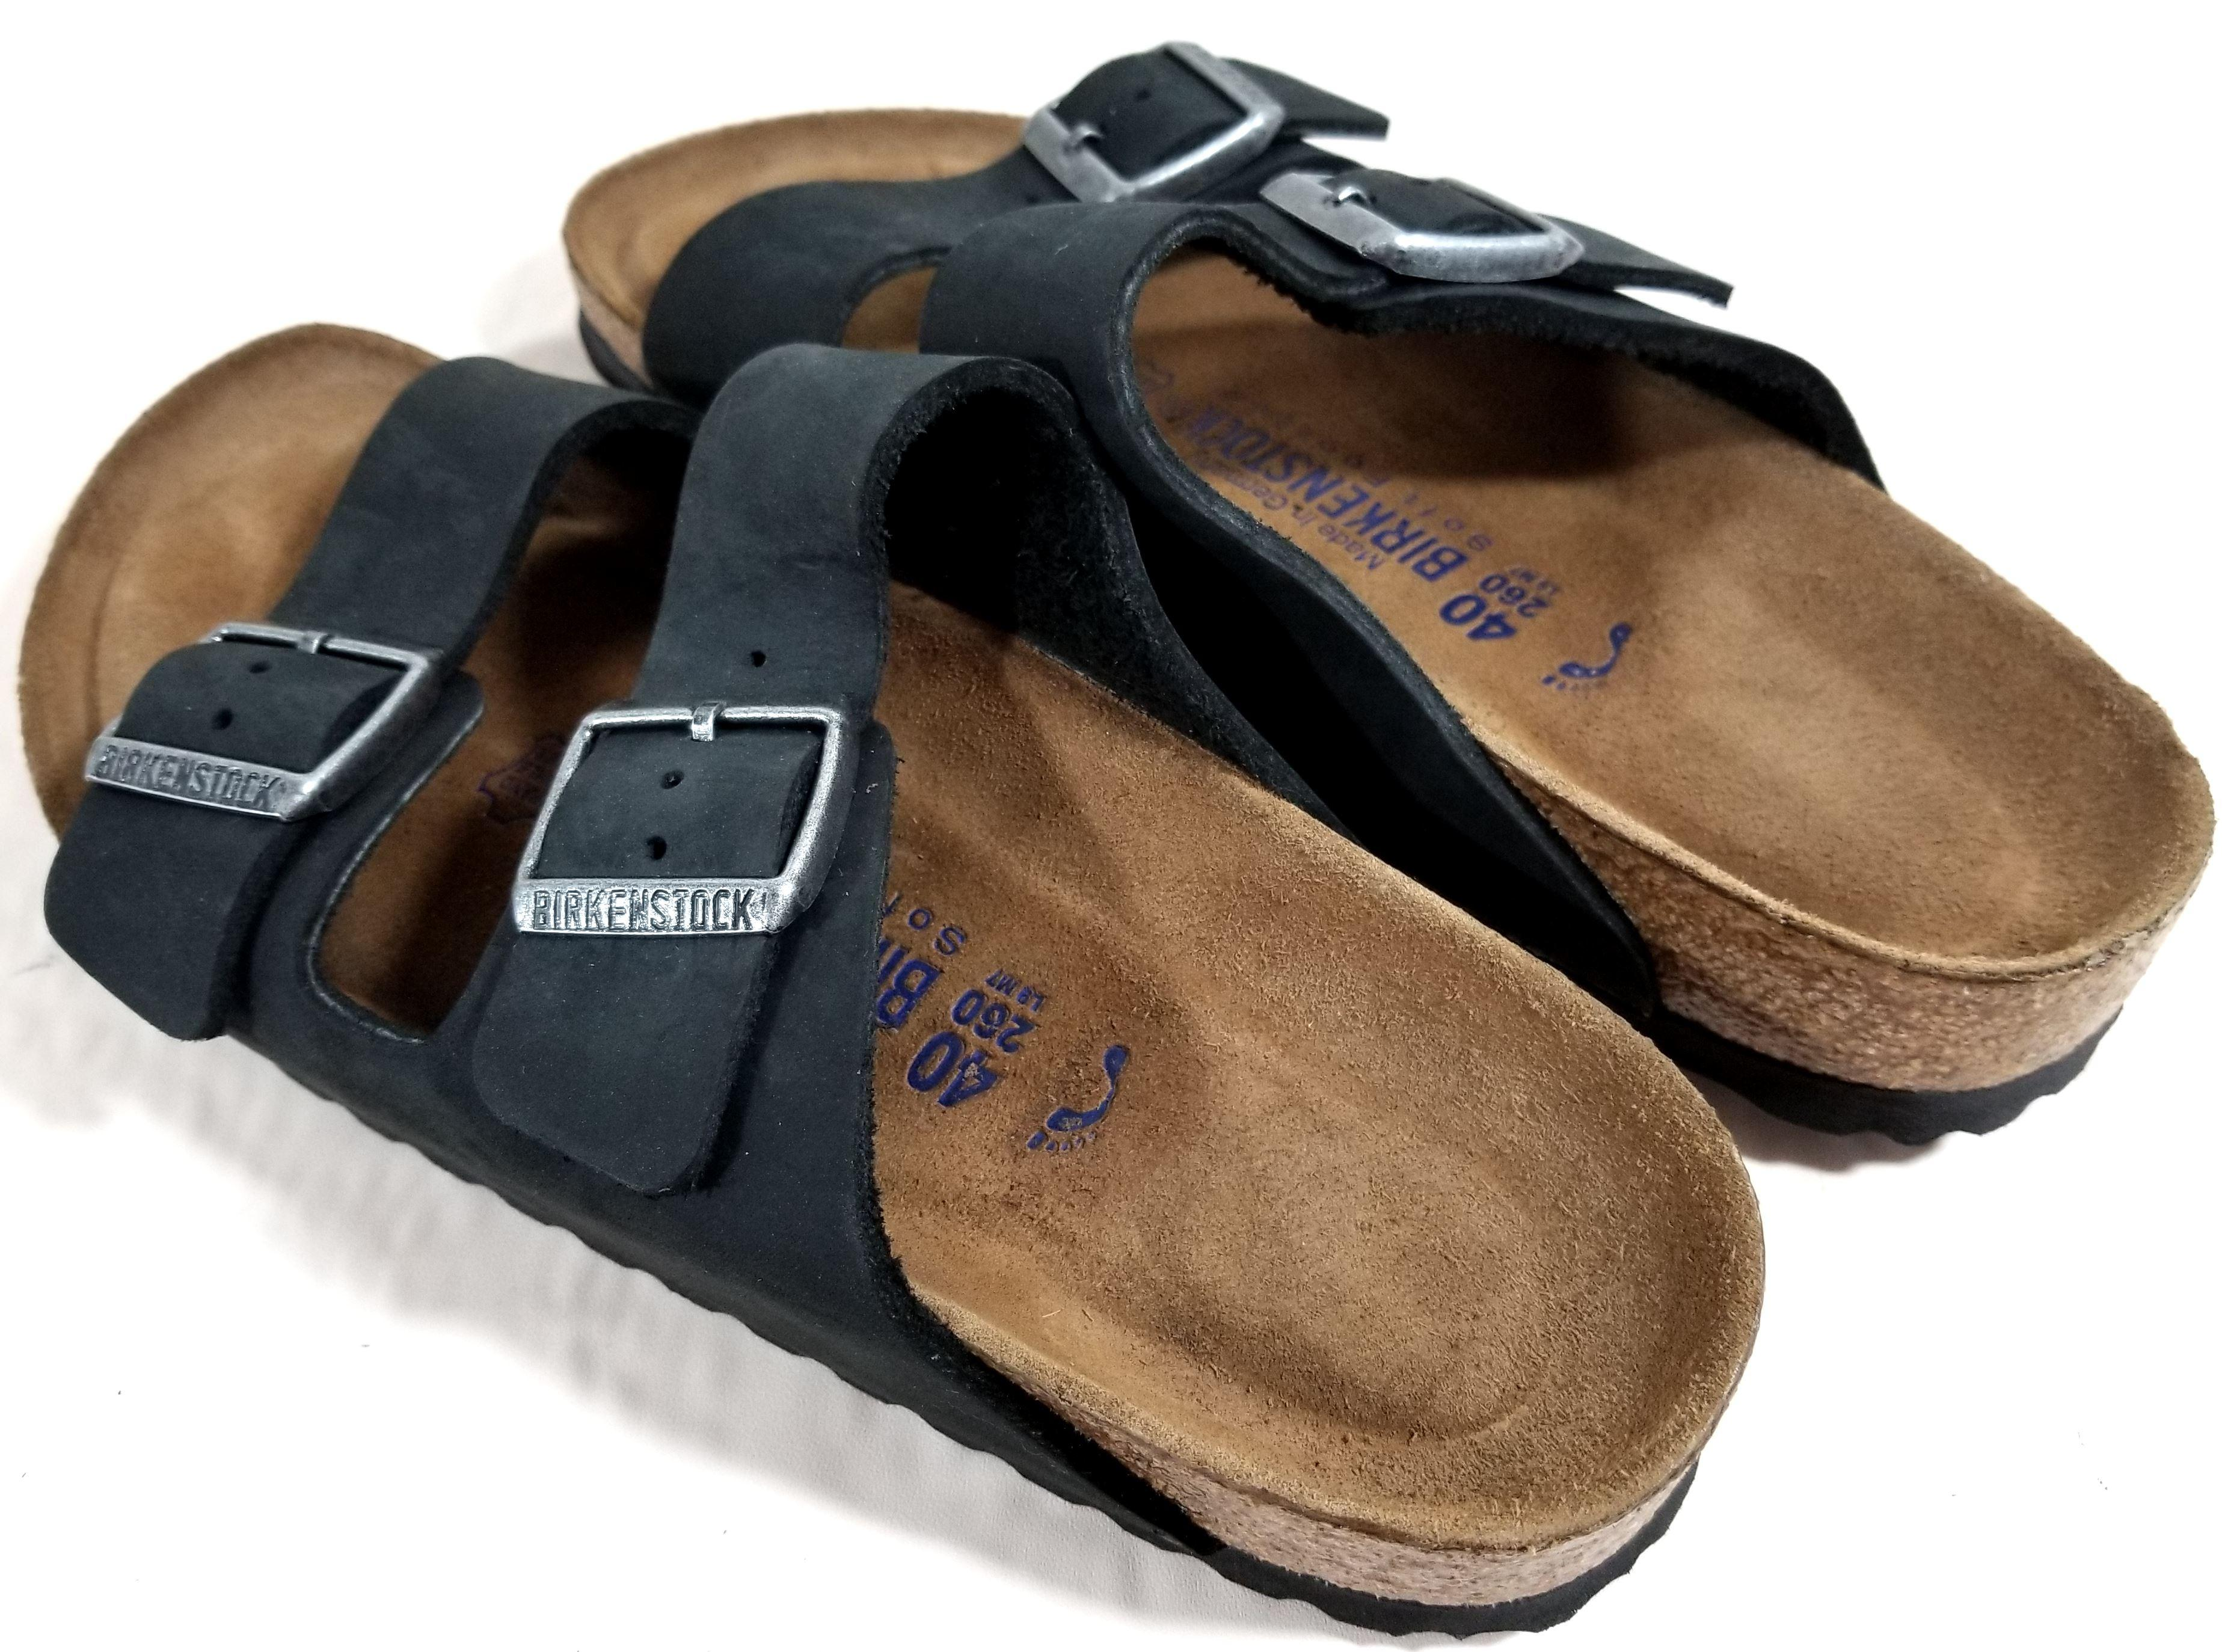 1f83c47b Find cheap birkenstock outlet store save with - the shop expert! Free  shipping, in stock. Shop hundreds of favorite brands. Larisa sandals.